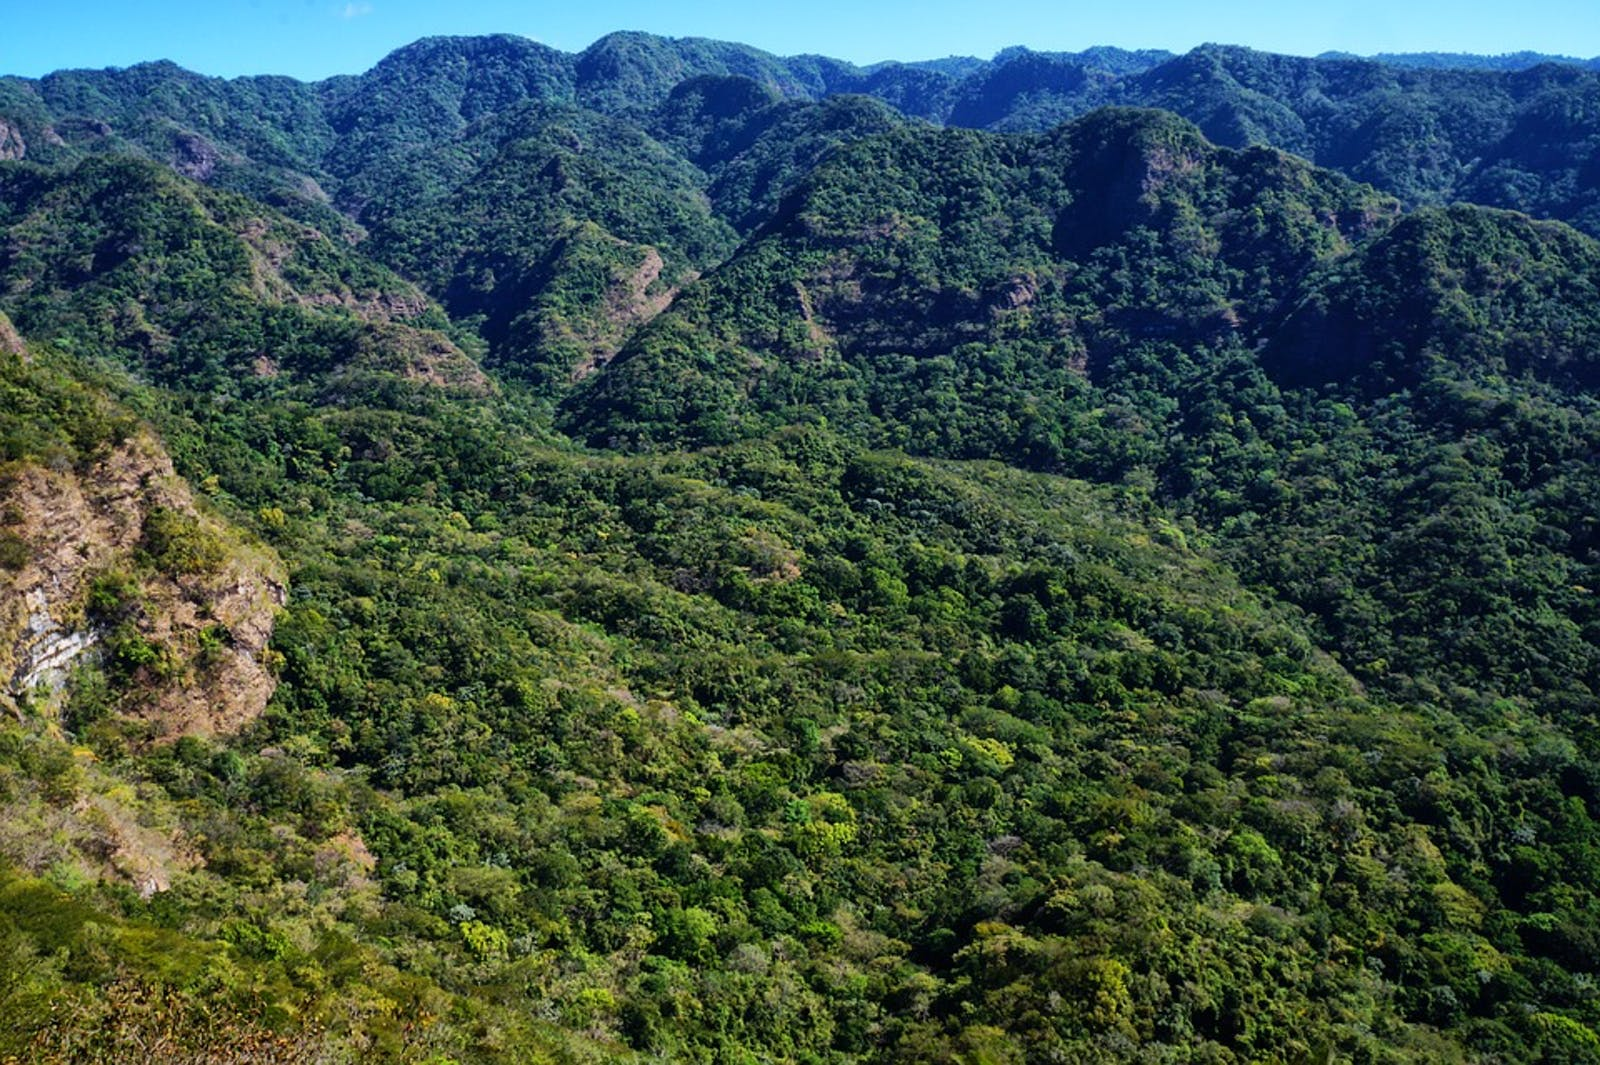 Central American Montane Forests